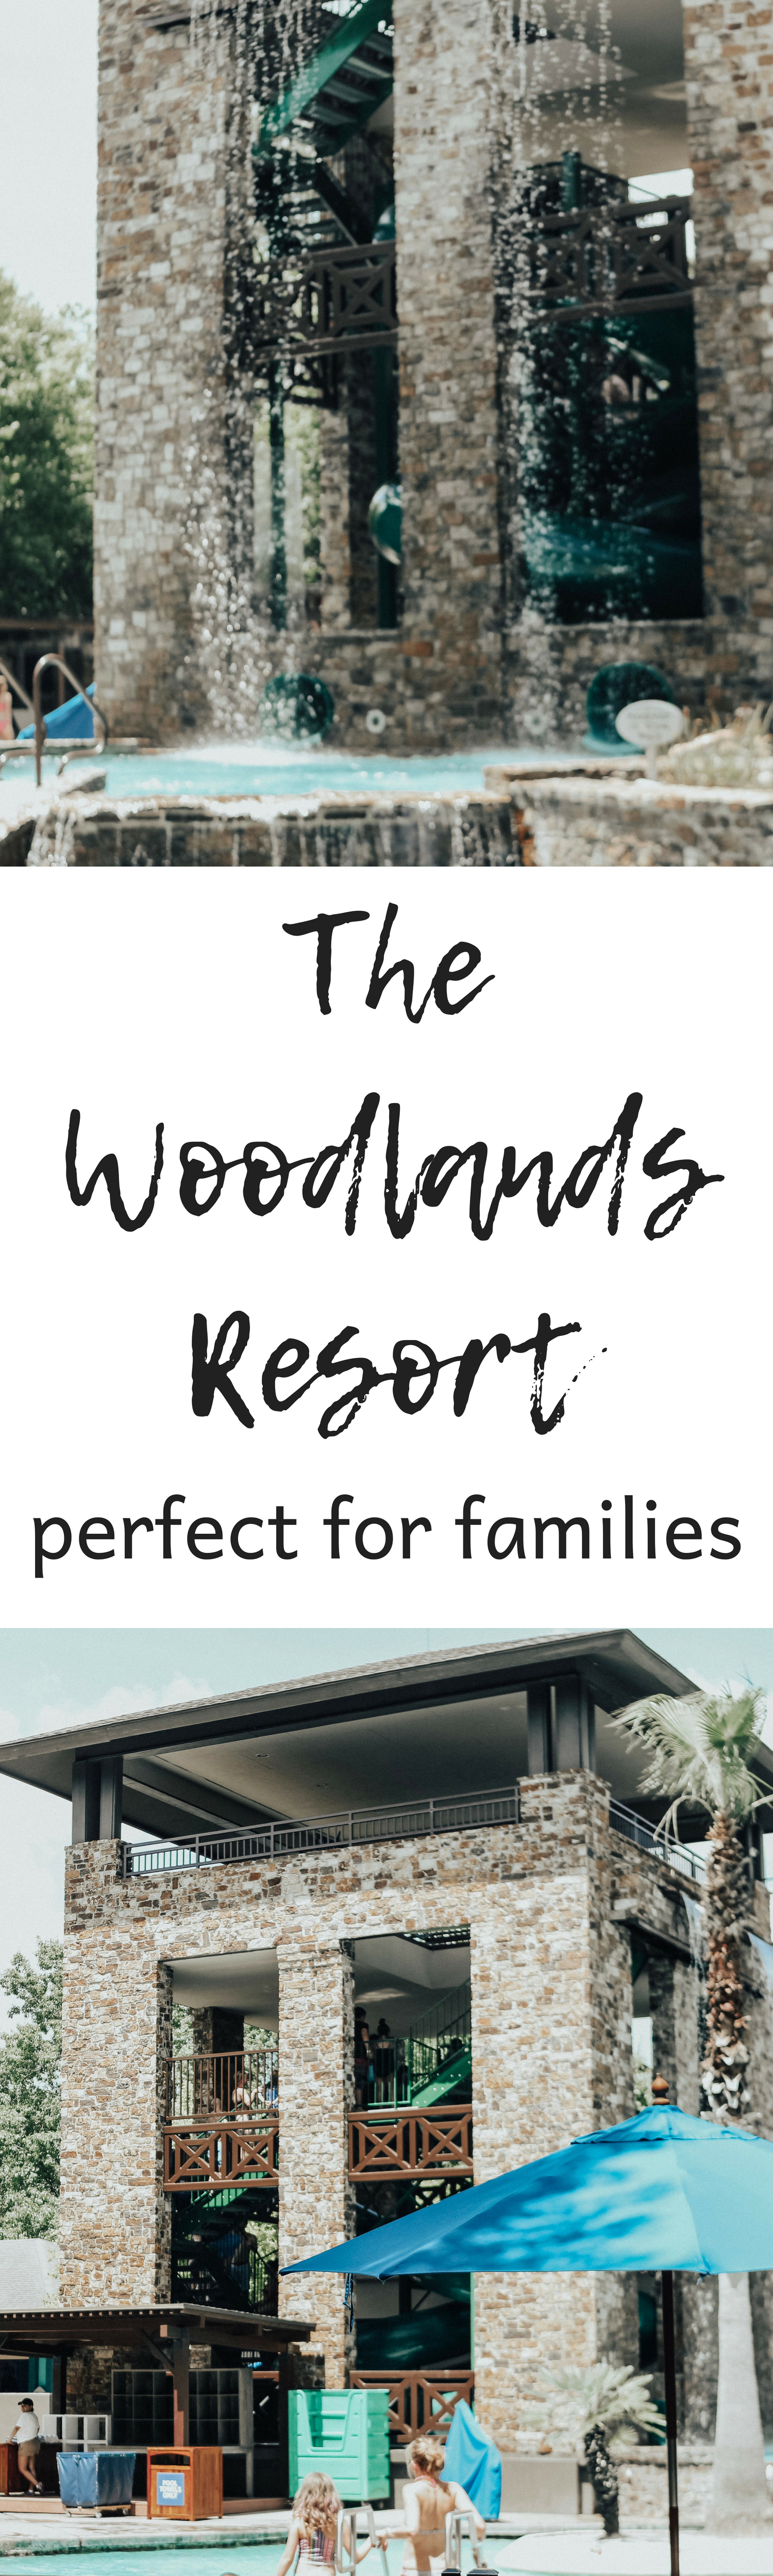 The Woodlands Resort family vacation